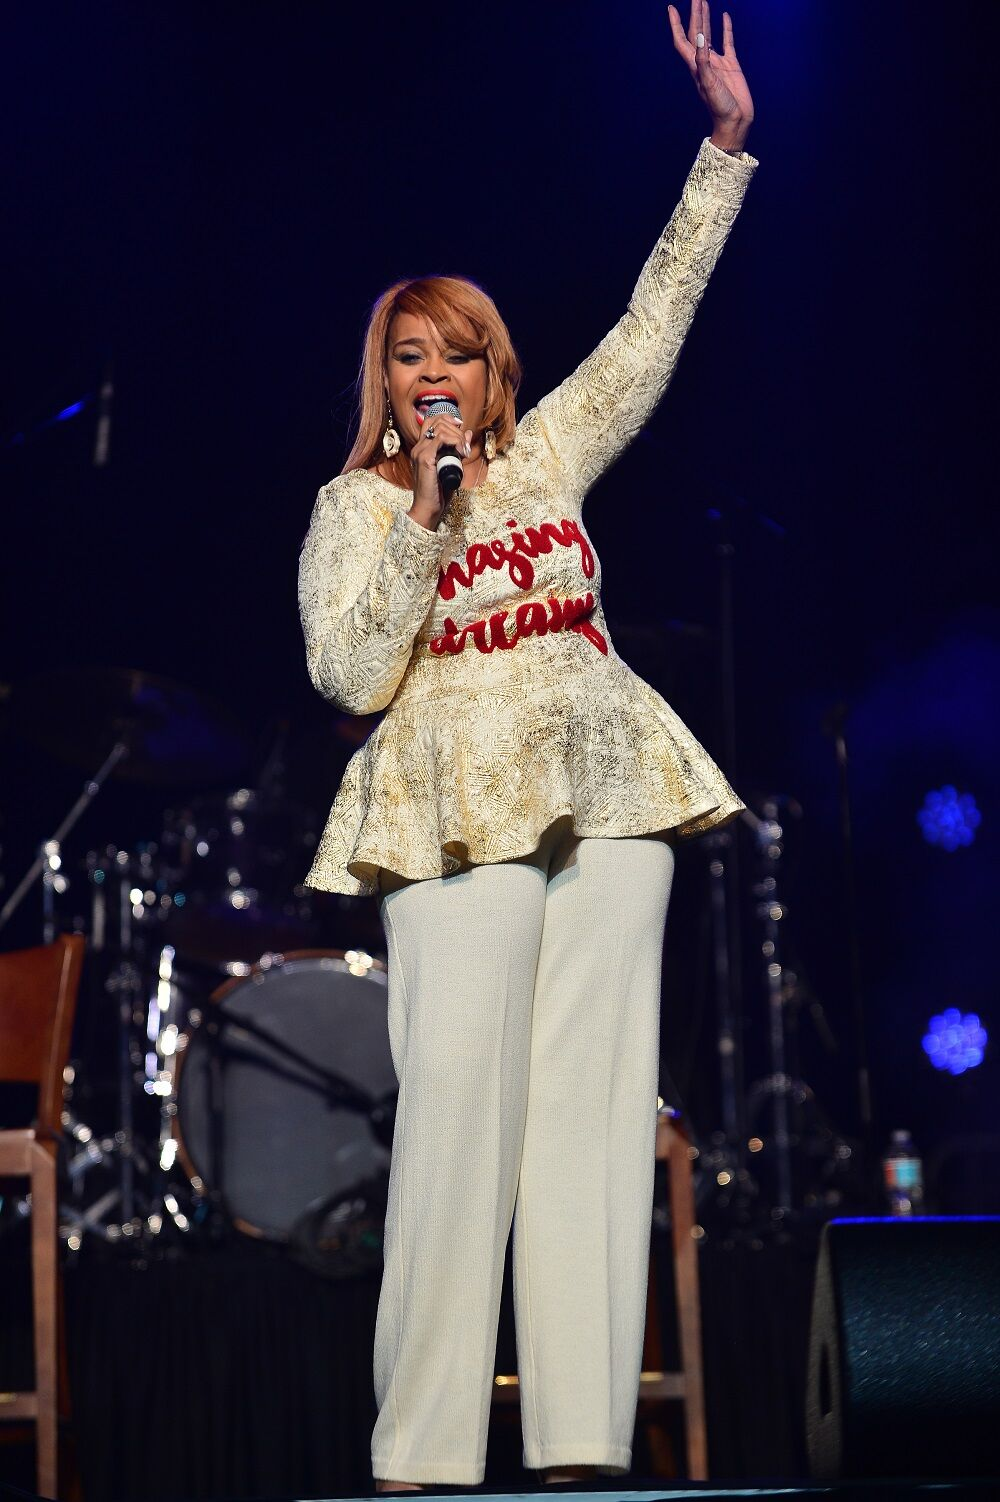 Karen Clark Sheard performs at the 2nd Annual South Dade MusicFest and Mothers Day Musicfest SBC Community Development Corporation (SBC CDC) at Watsco Center on May 14, 2017 in Coral Gables, Florida.   Source: Getty Images